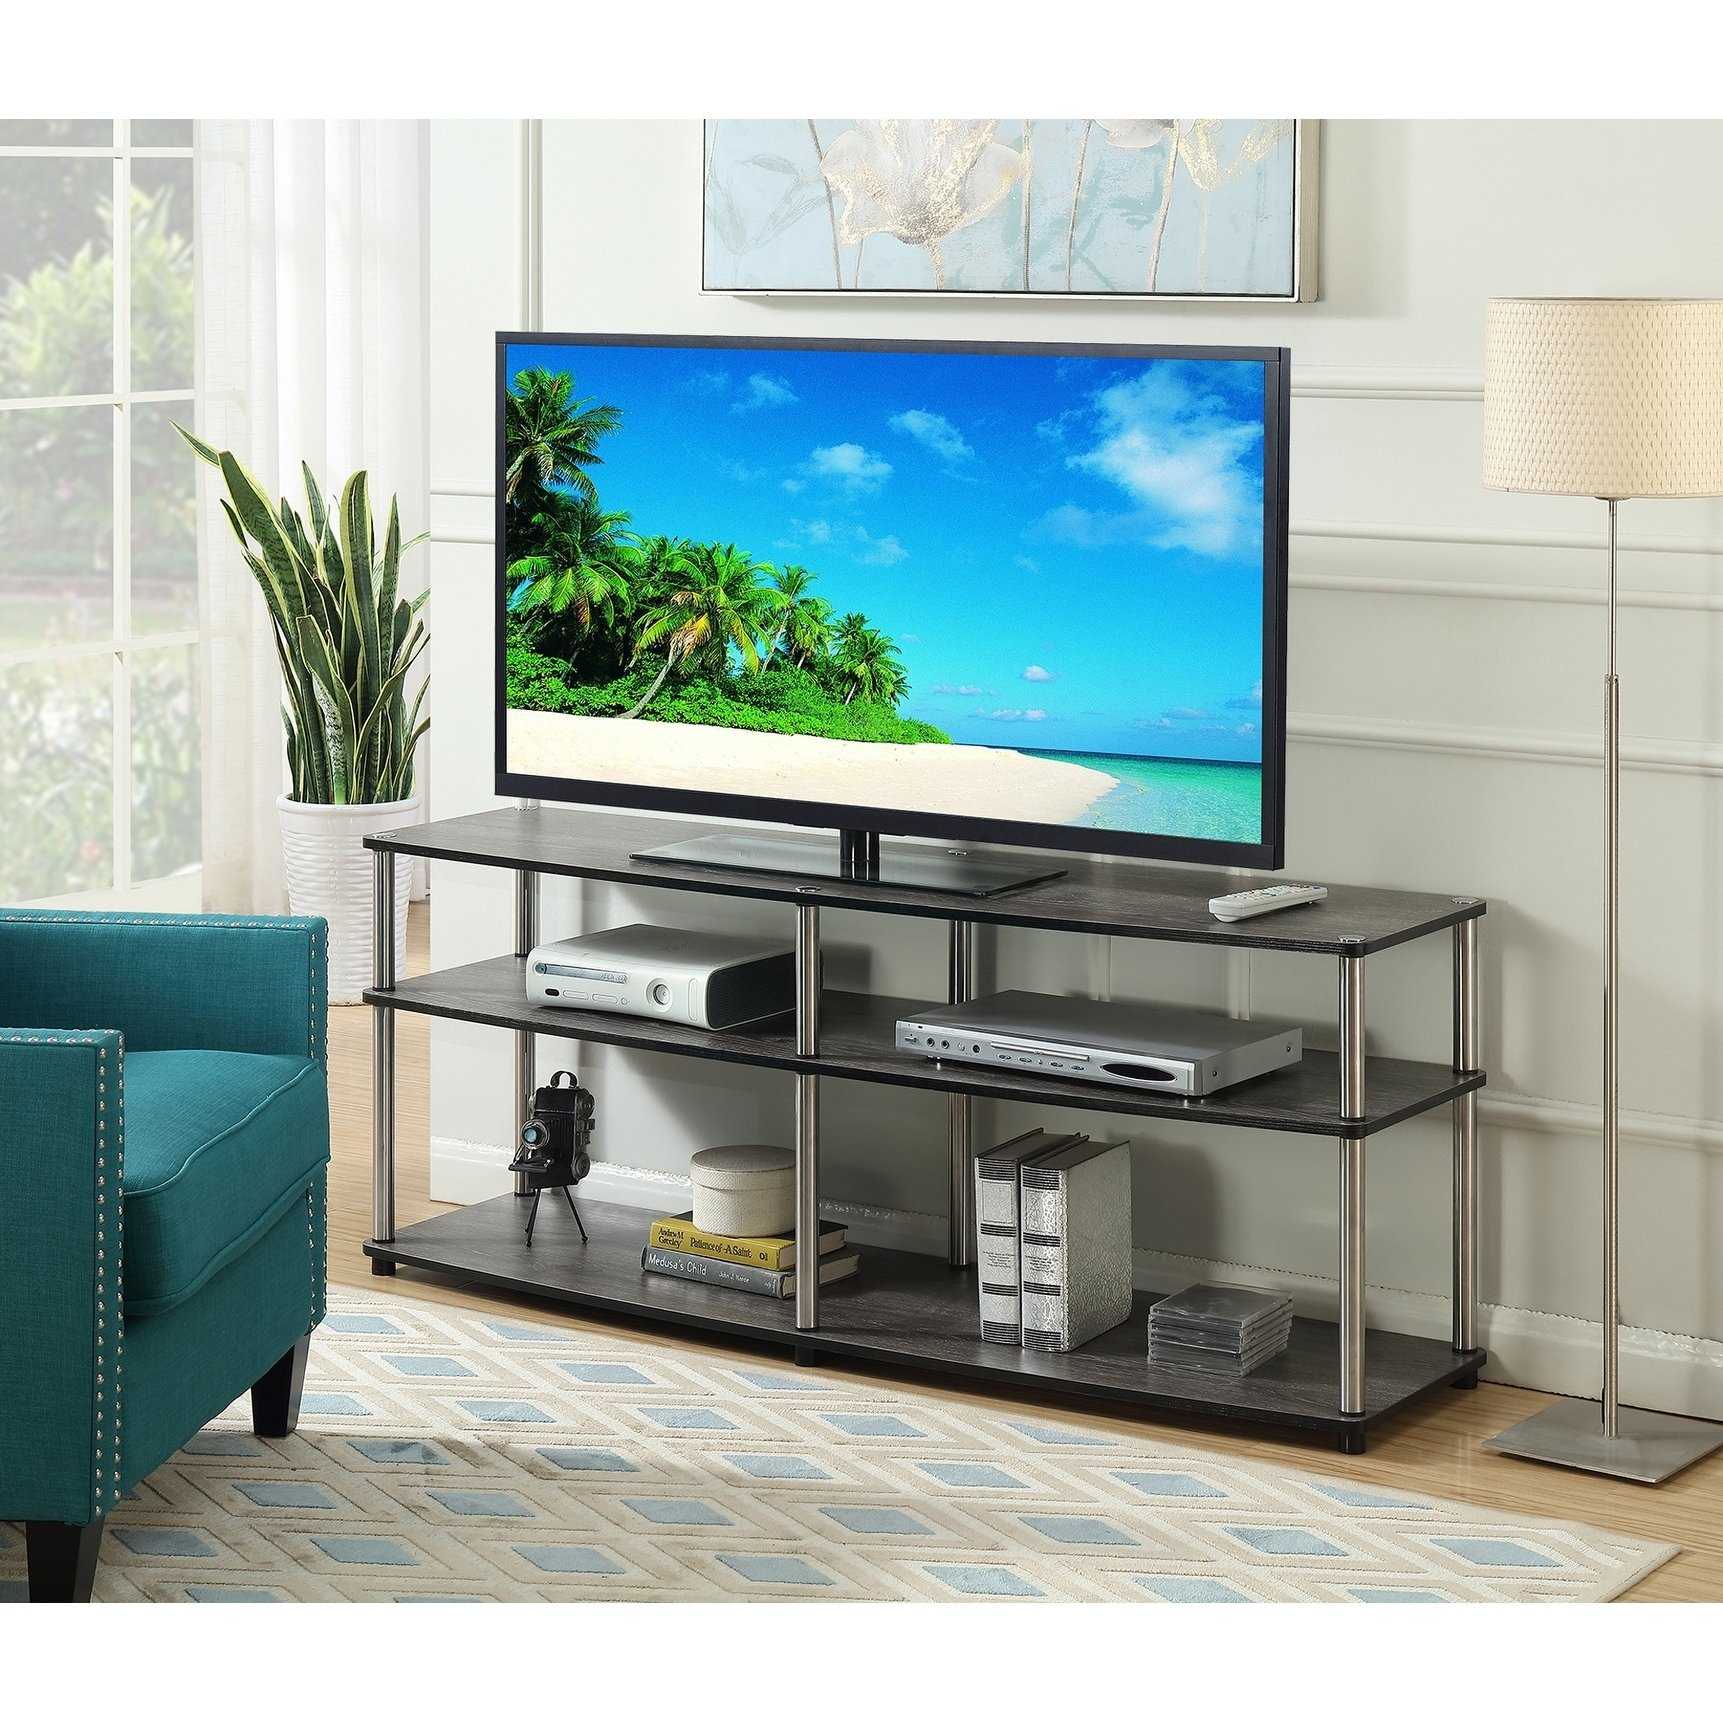 Buy Grey, 42 – 60 Inches Tv Stands & Entertainment Centers Online At Throughout Canyon 64 Inch Tv Stands (View 22 of 30)